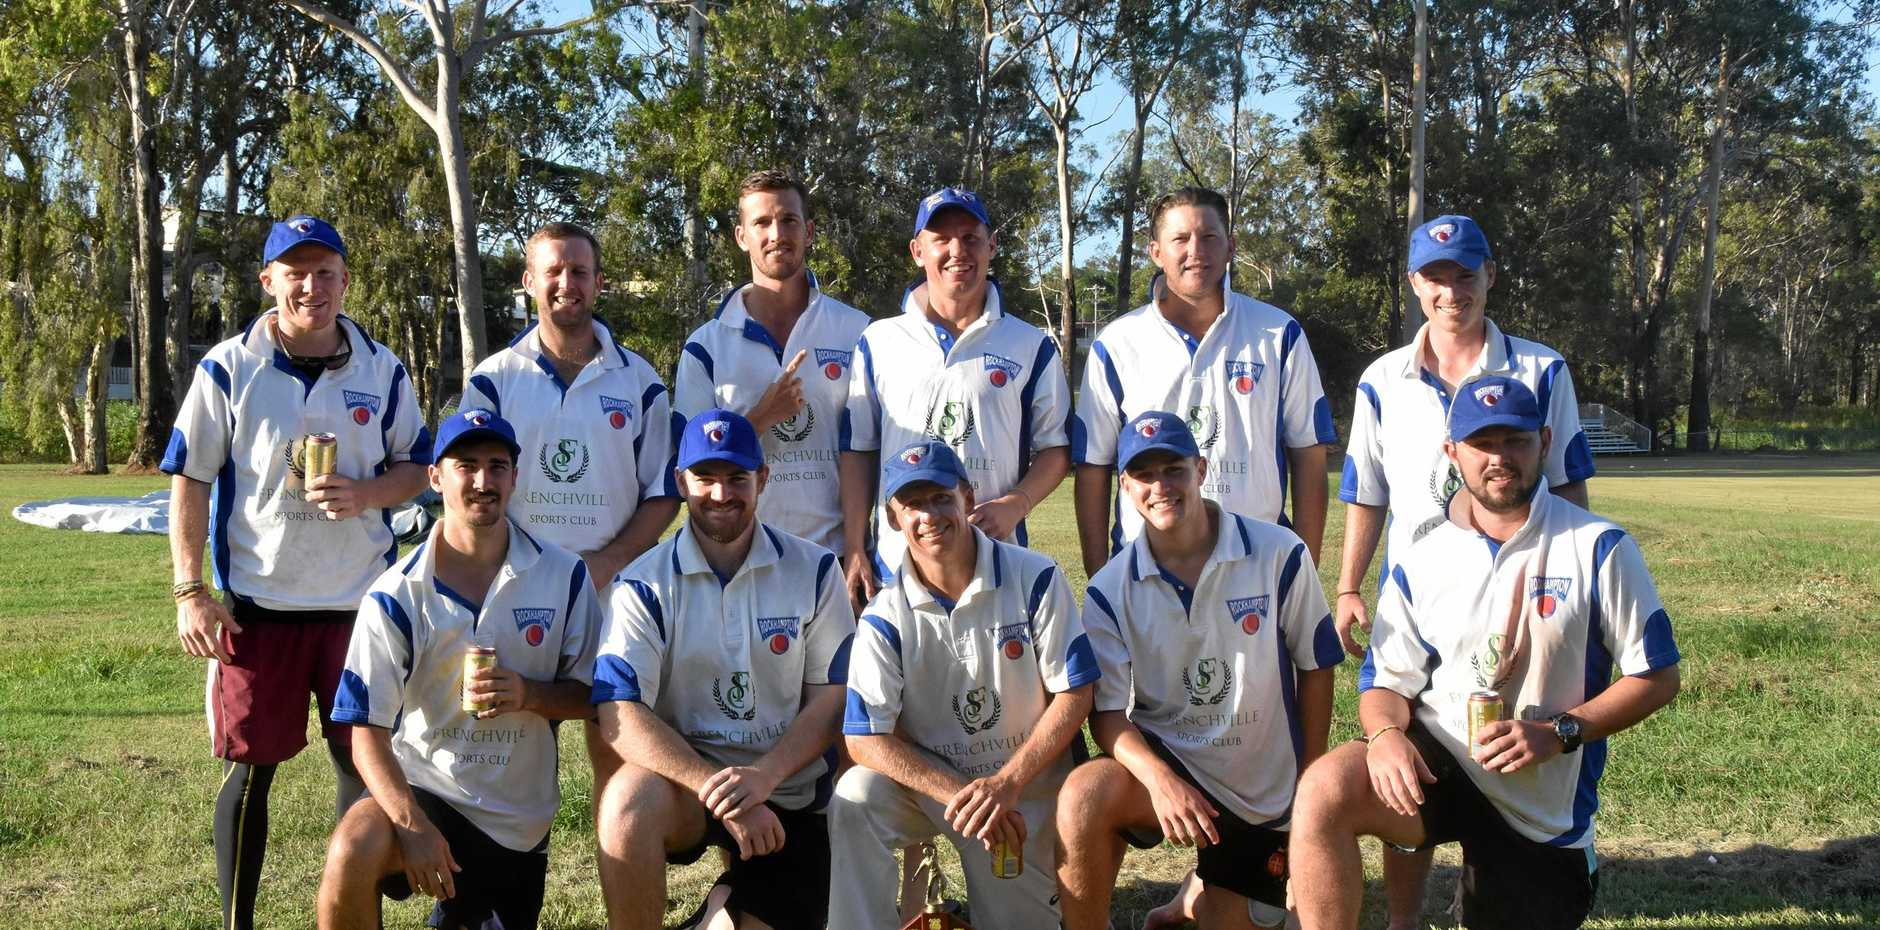 The victorious Rockhampton team after taking out the 2018/19 CQ Championships - their 10th in a row. Rockhampton defeated Gladstone by 83 runs at Sun Valley Oval.